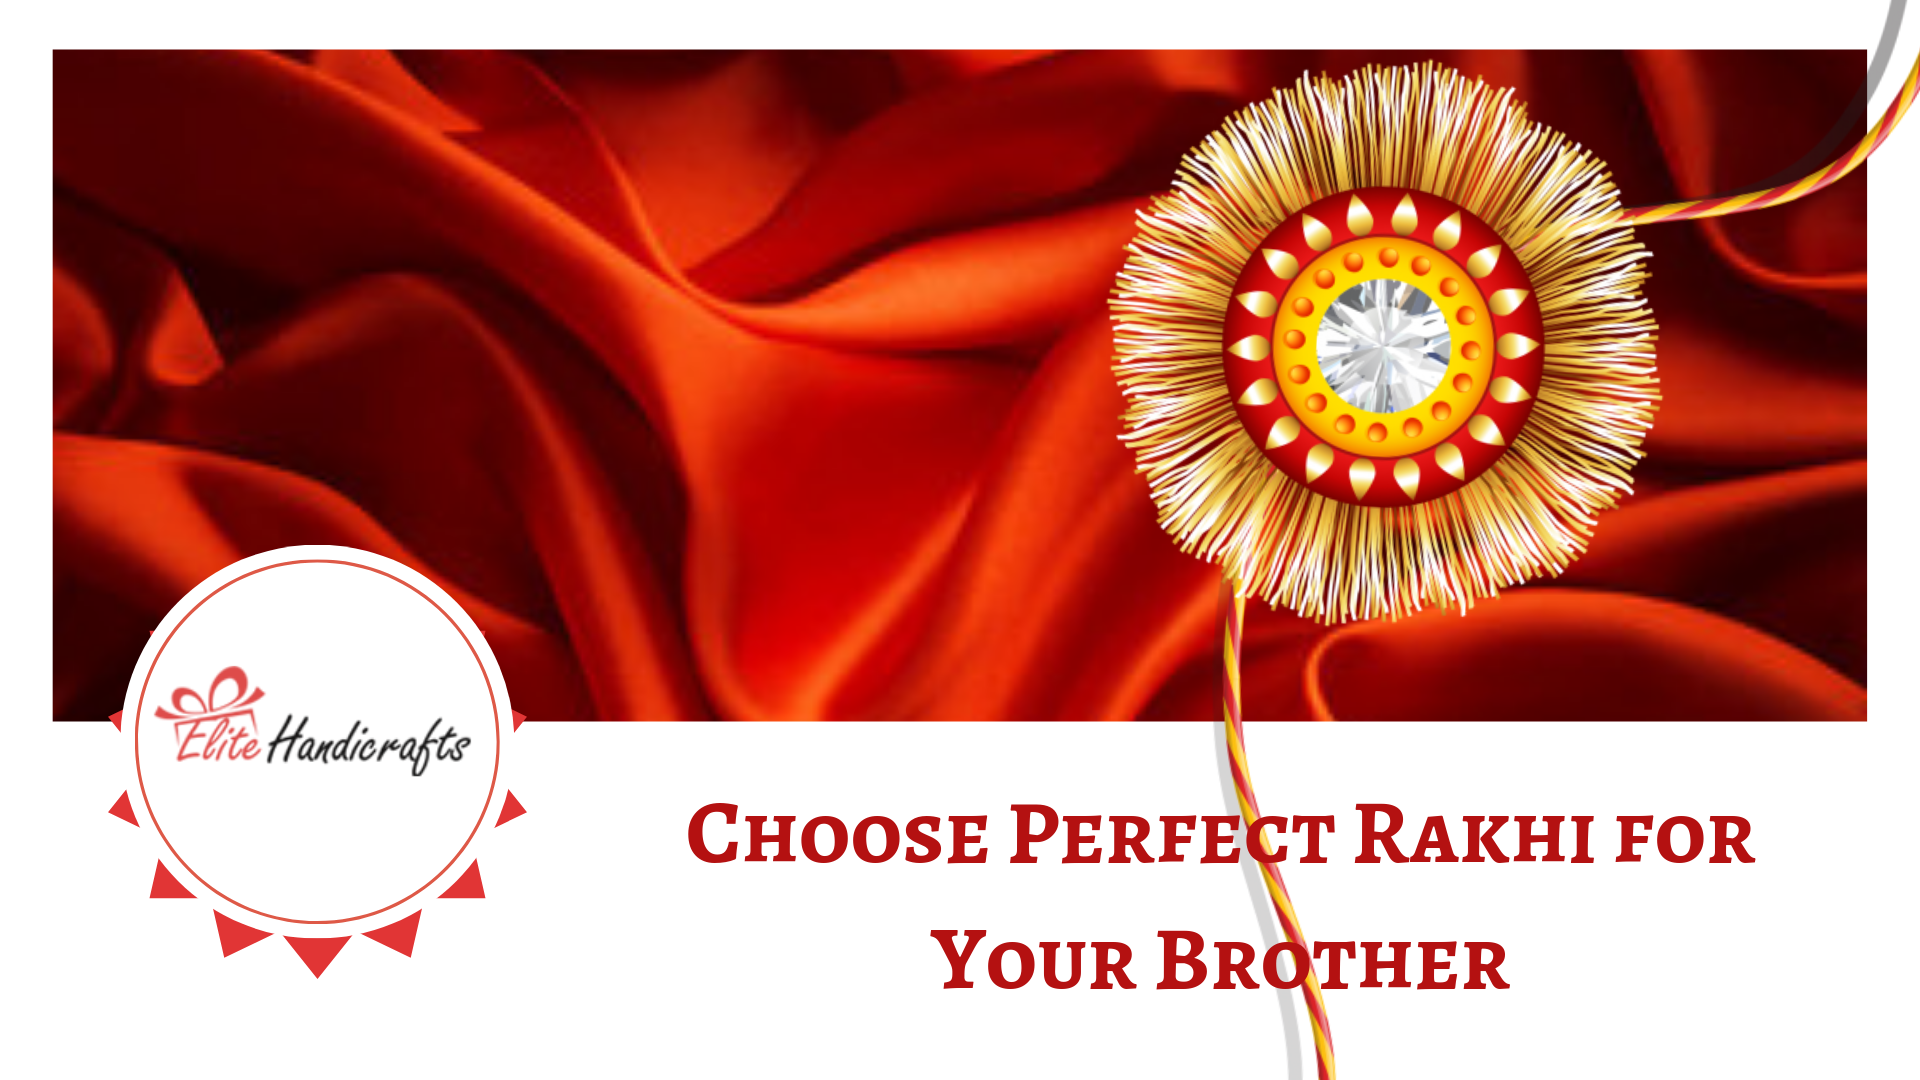 Choose Perfect Rakhi for Your Brother